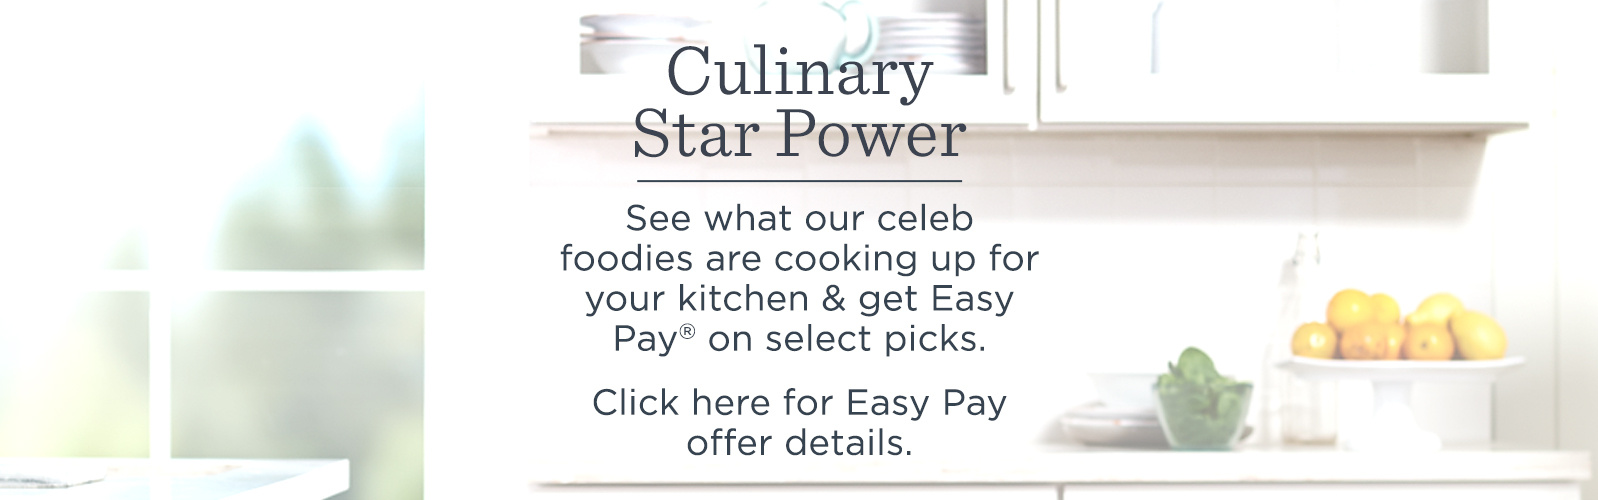 Culinary Star Power  See what our celeb foodies are cooking up for your kitchen & get Easy Pay® on select picks.  Click here for Easy Pay details.